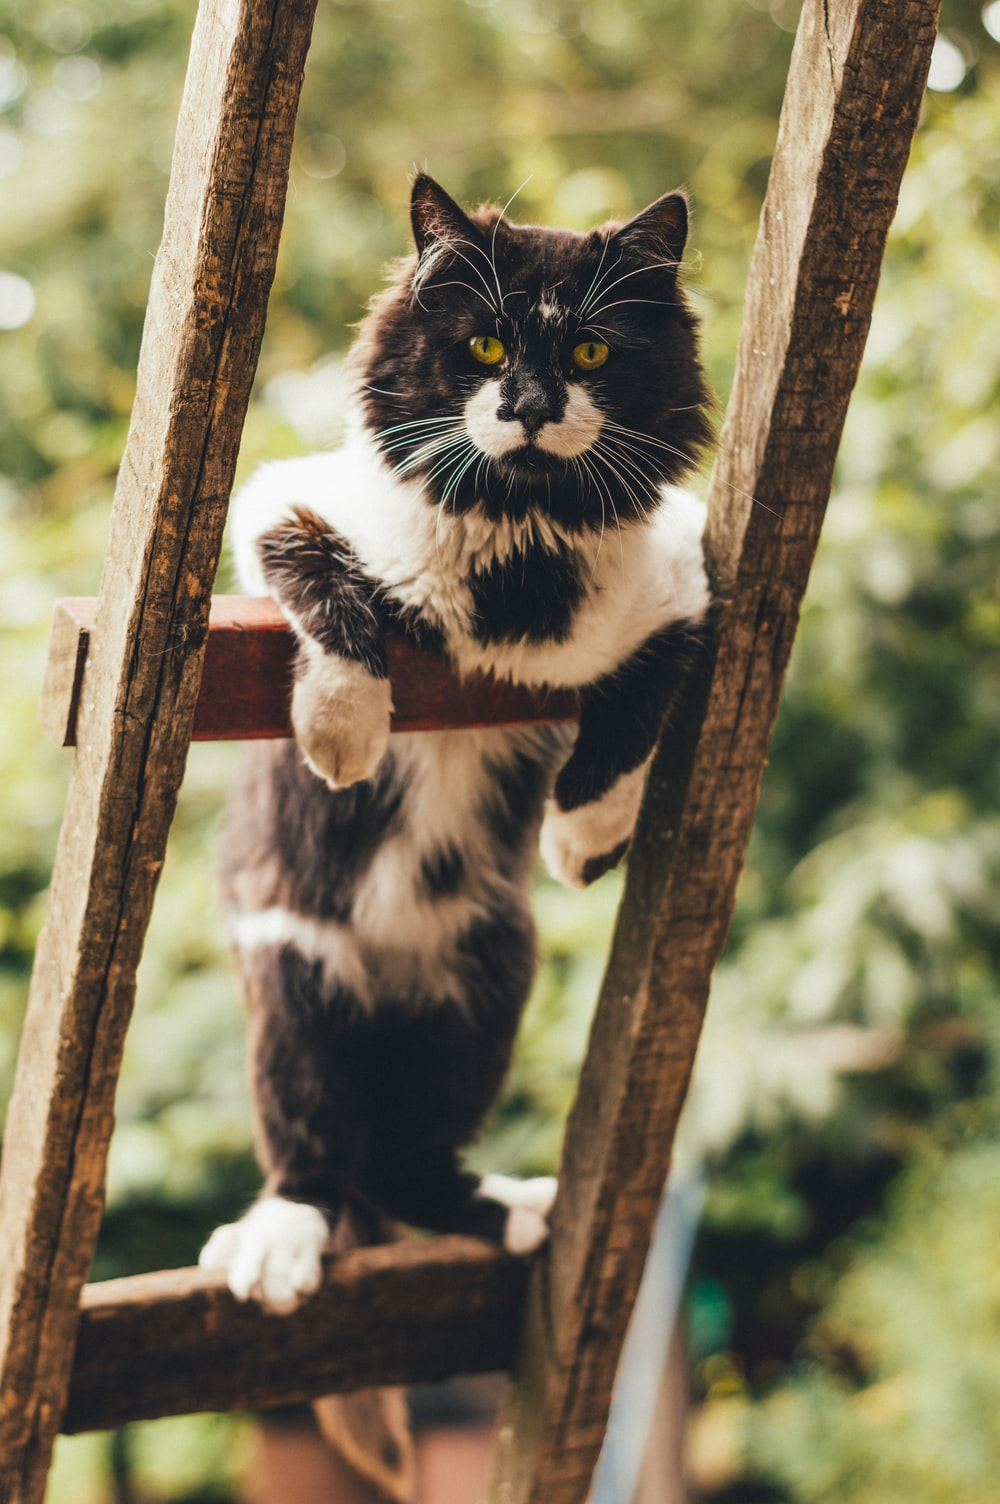 black and white cat on brown wooden fence during daytime